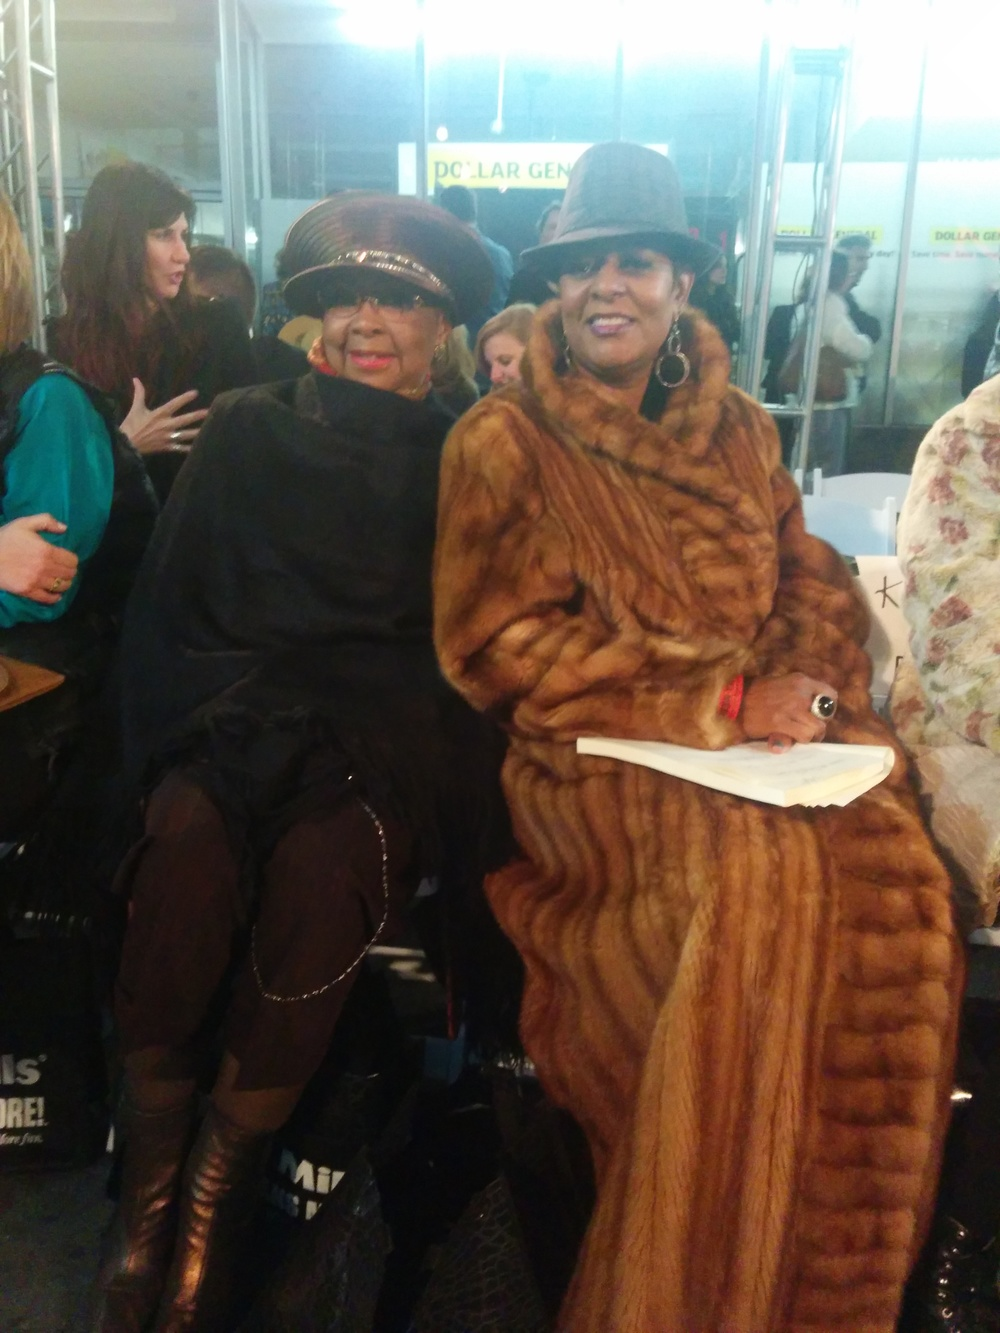 Fashionable show attendees.  Those furs were more than necessary that night because it was very cold that night.